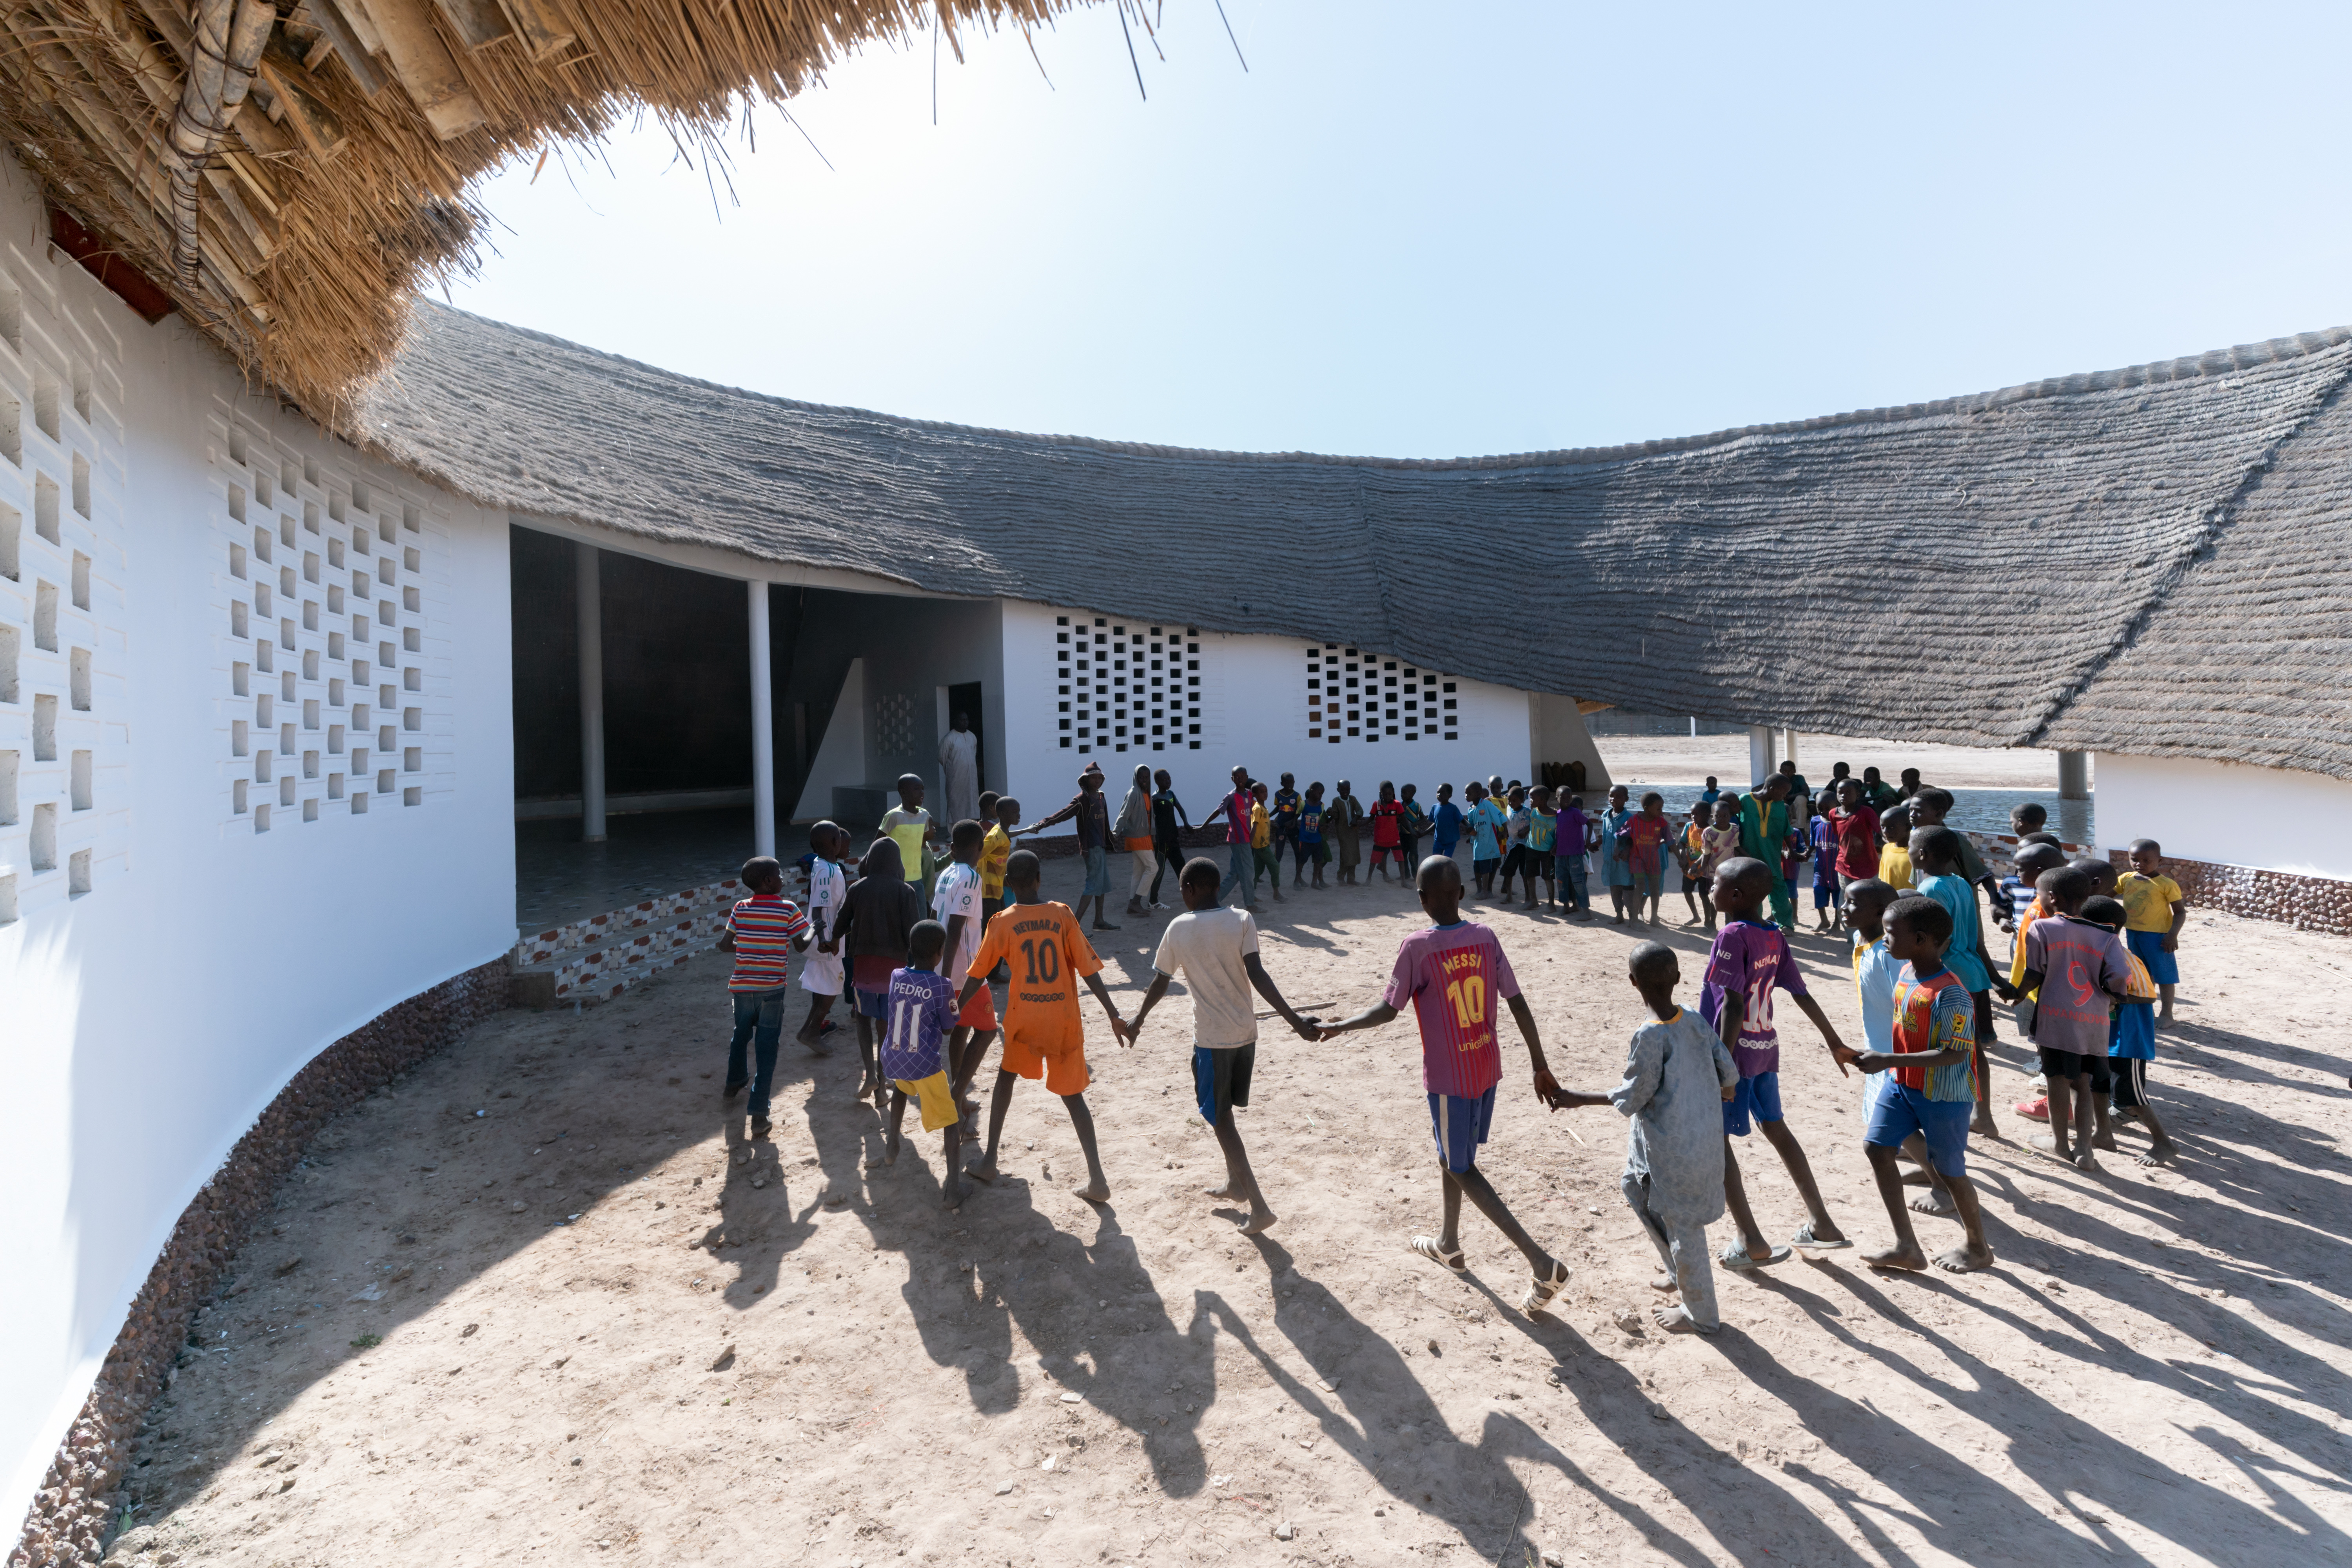 Fass School and Teachers' Residences was designed by Toshiko Mori Architect and is located in Fass, Senegal. The project is one of this year's AIA Architecture Awards winners